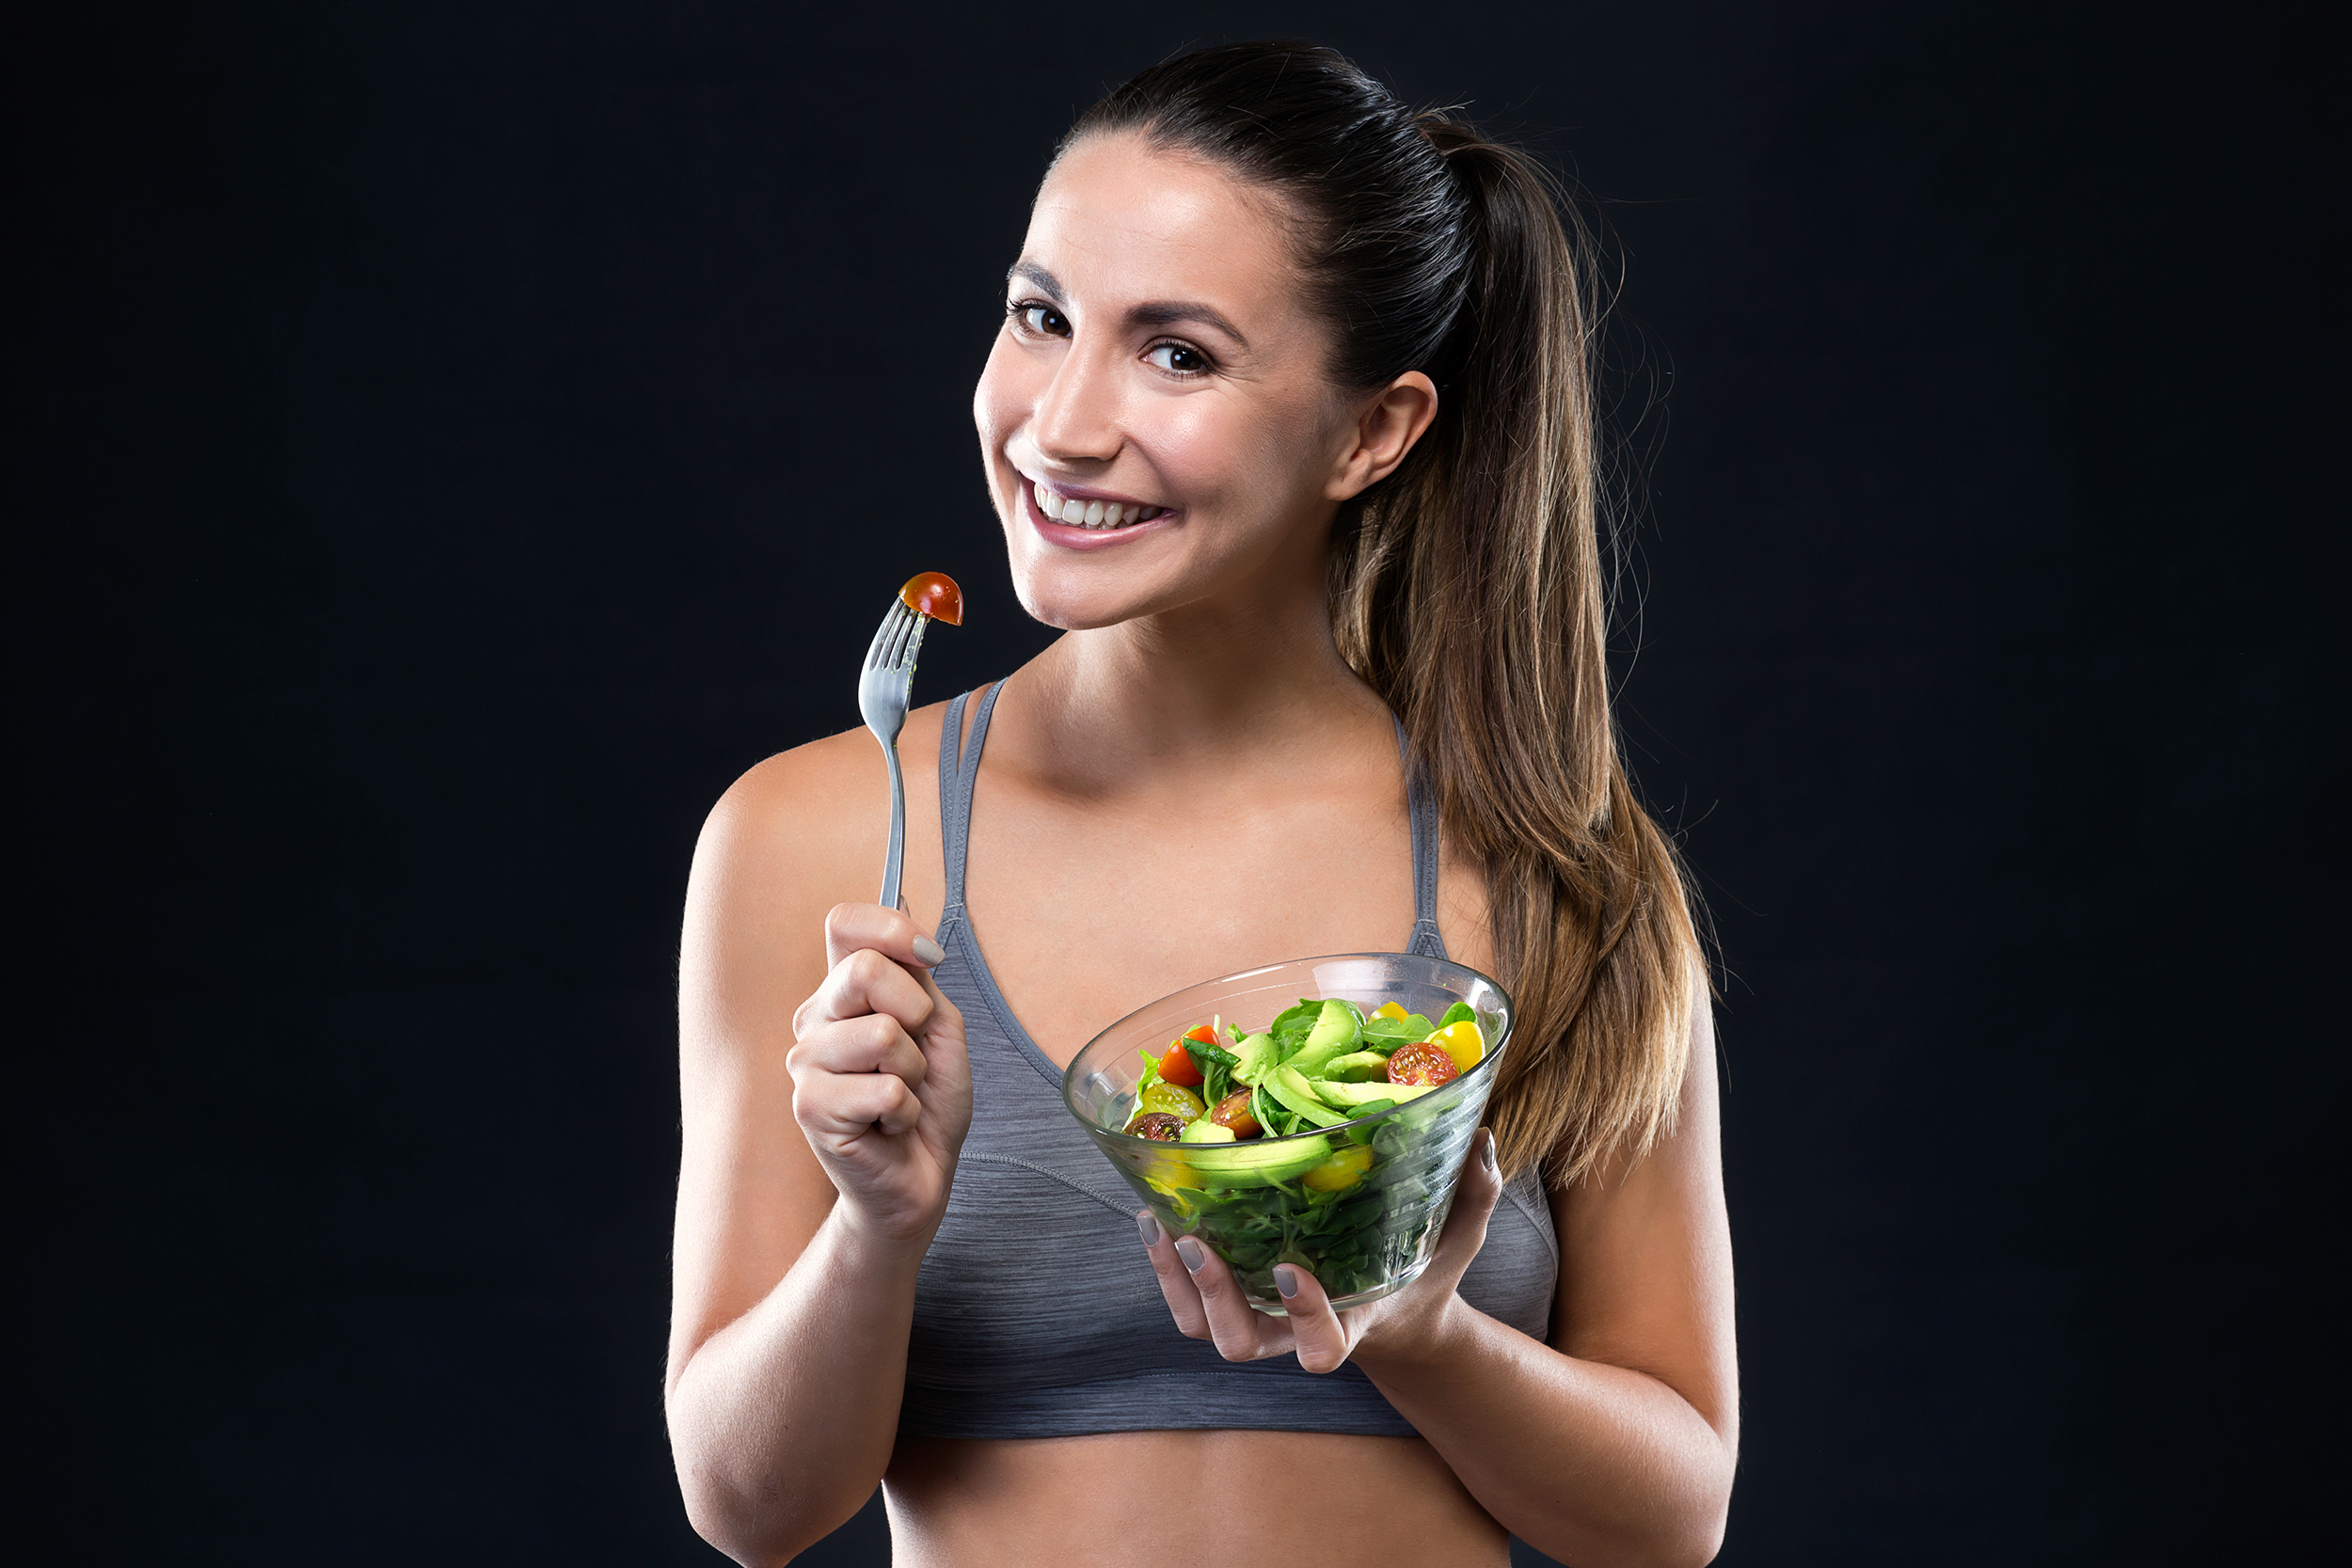 Healthy Eating Habits For Healthy Living